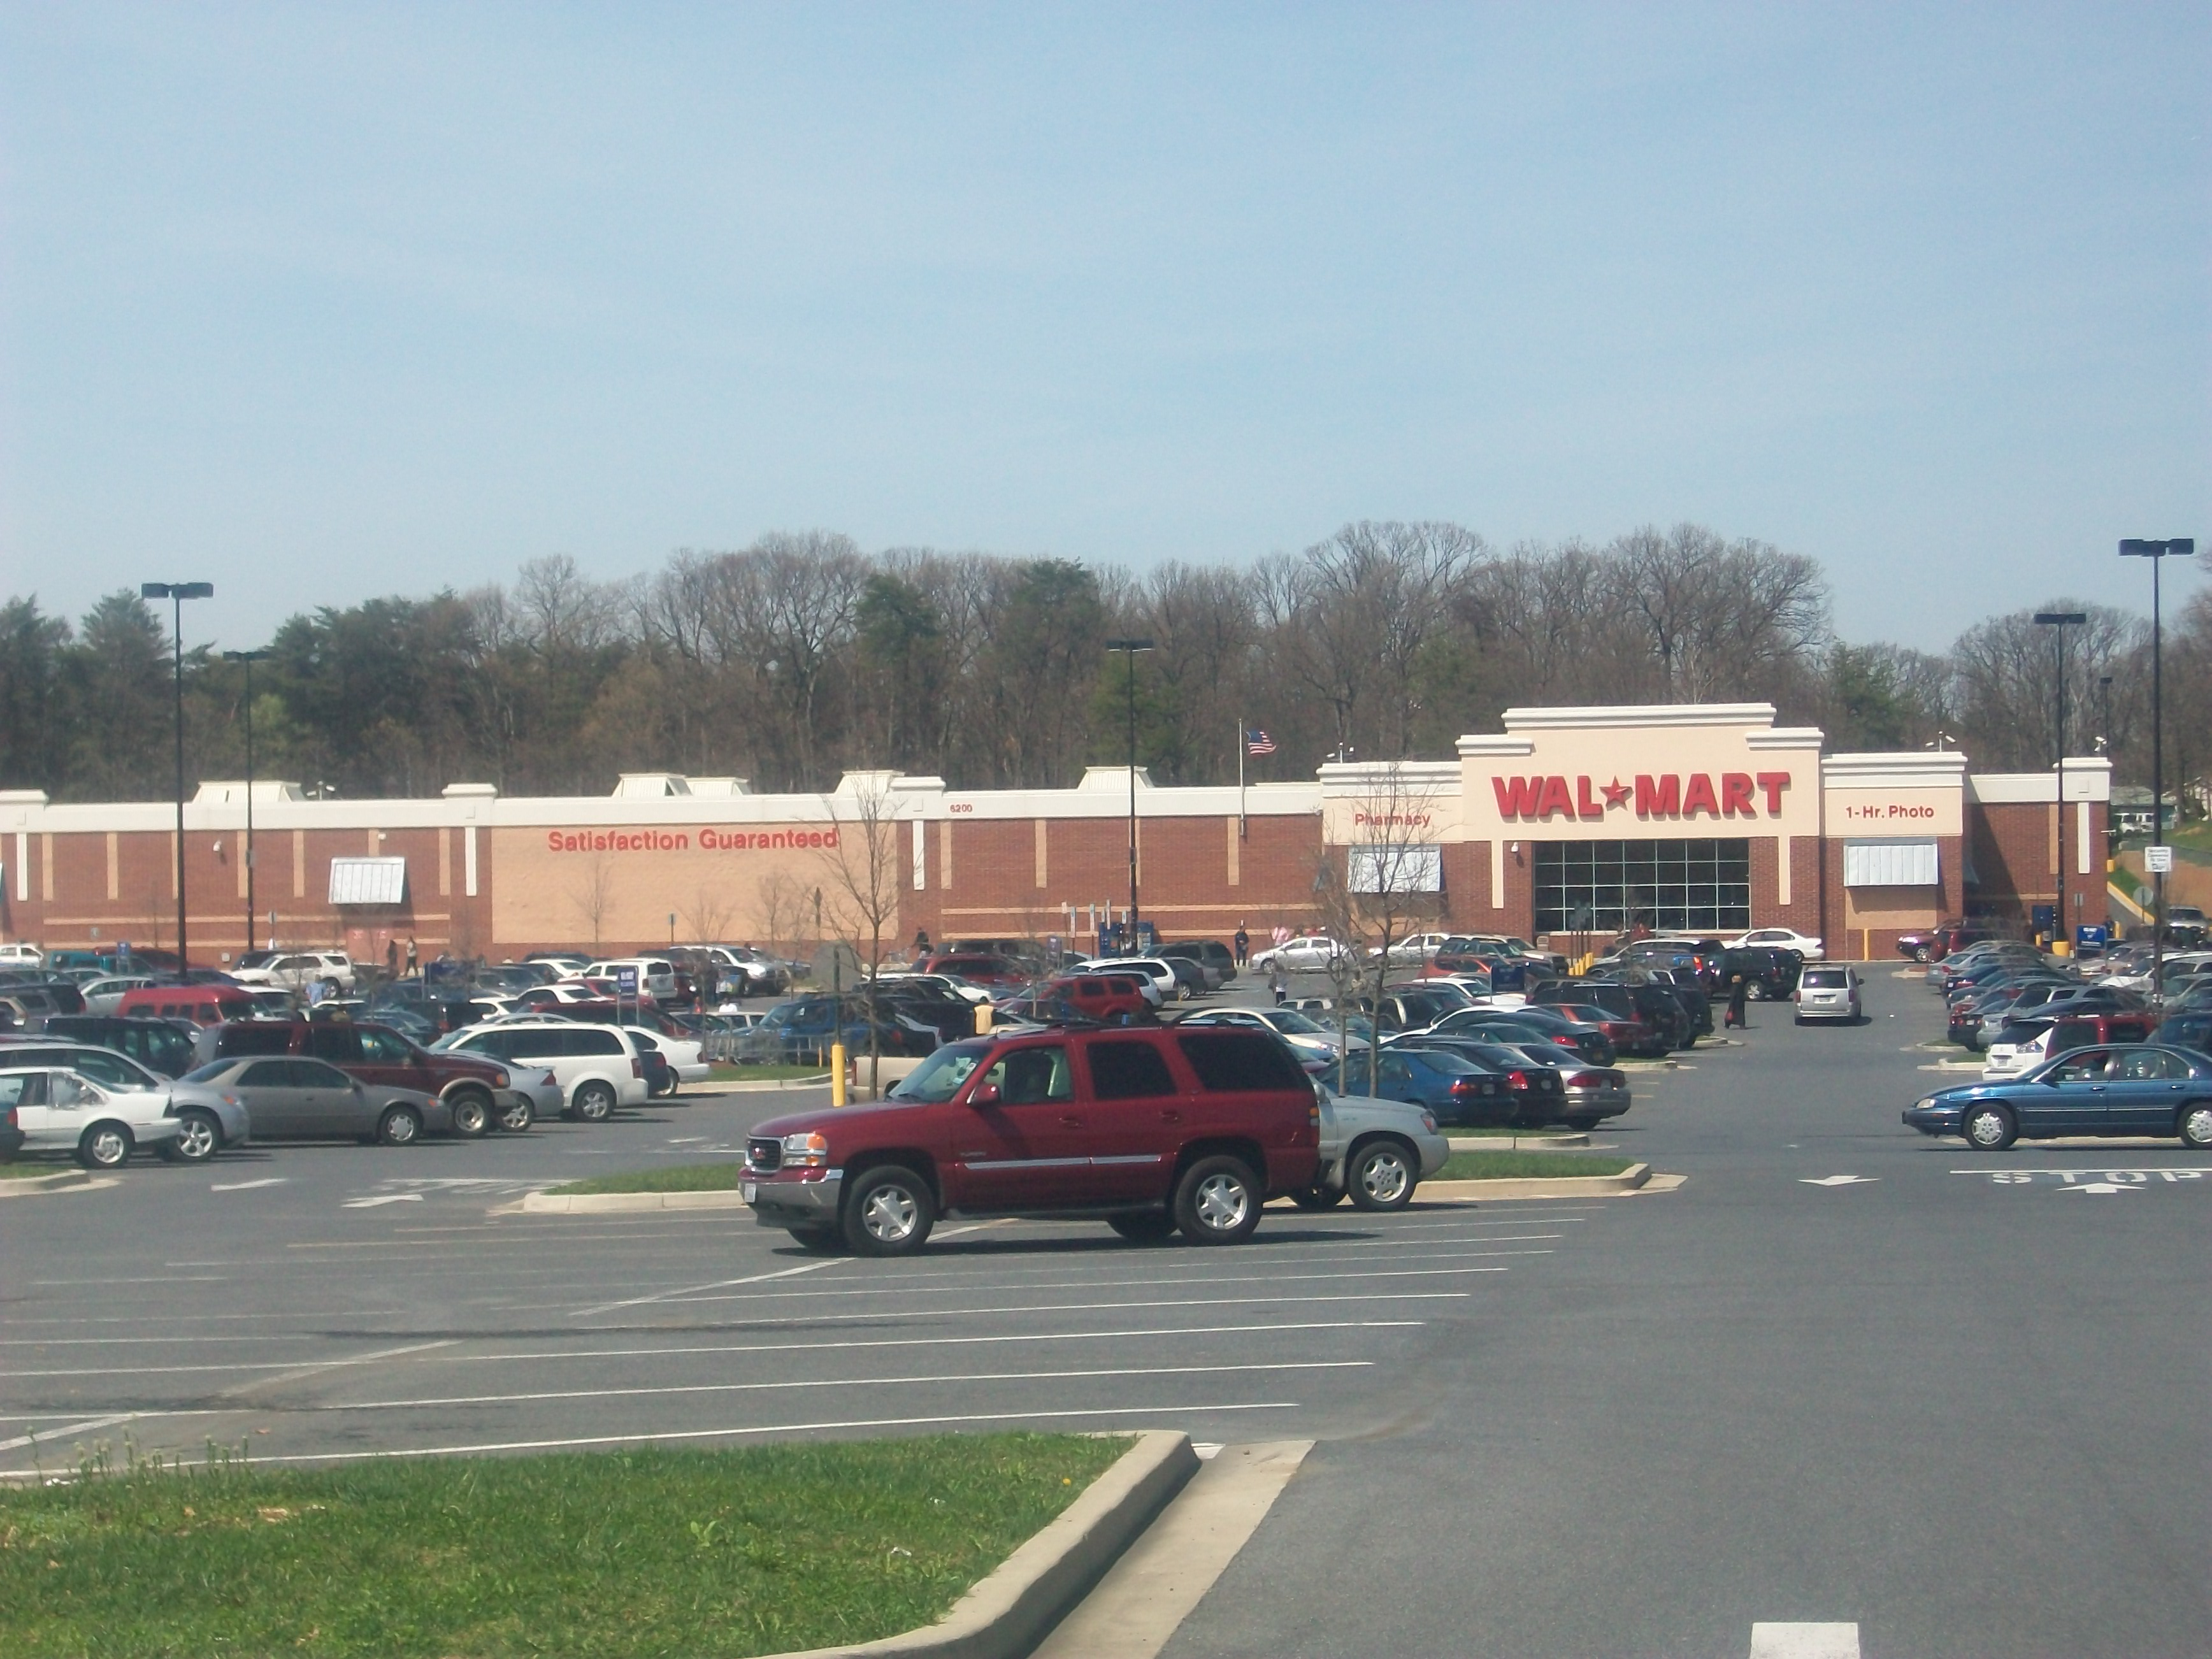 The Wal Mart Store That Was Built On Grounds Which Former Mall Once Stood